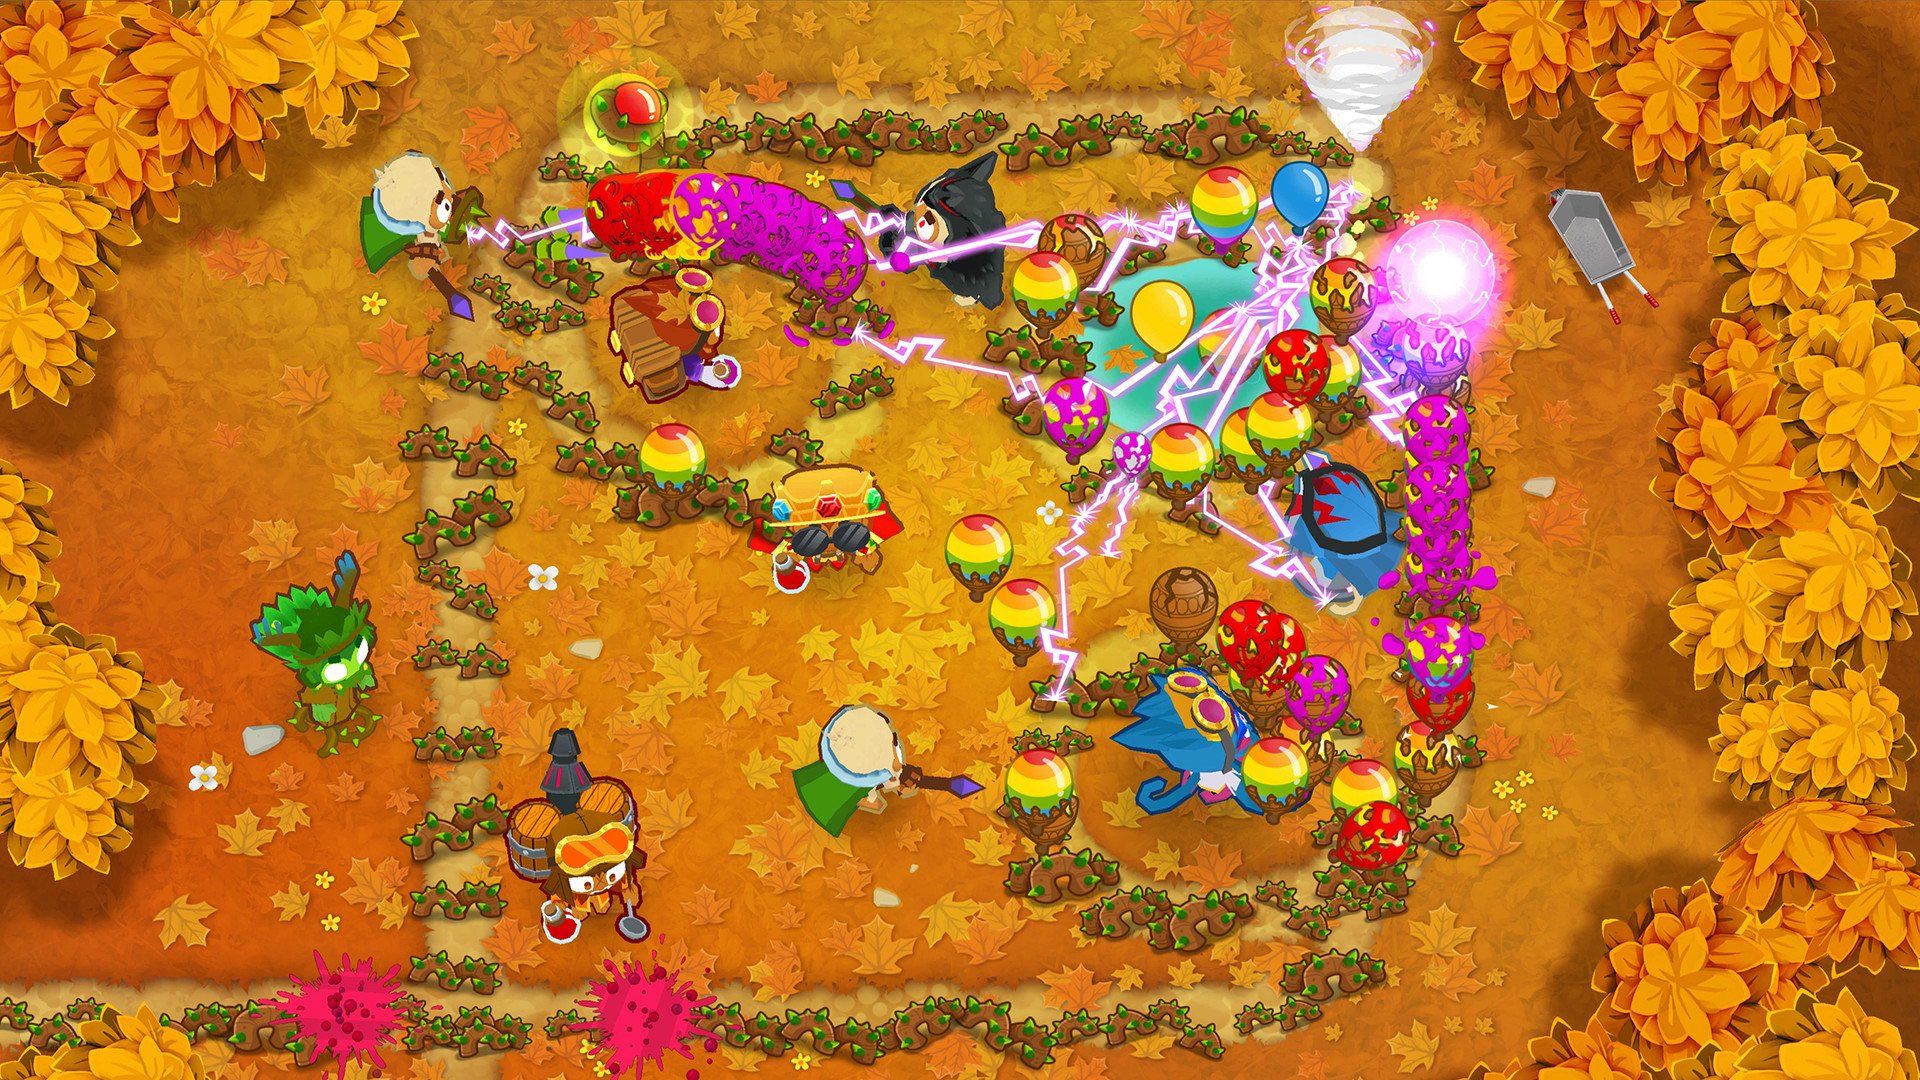 Game Trainers: Bloons TD 6 v11 1 1818 (+1 Trainer) [Cheat